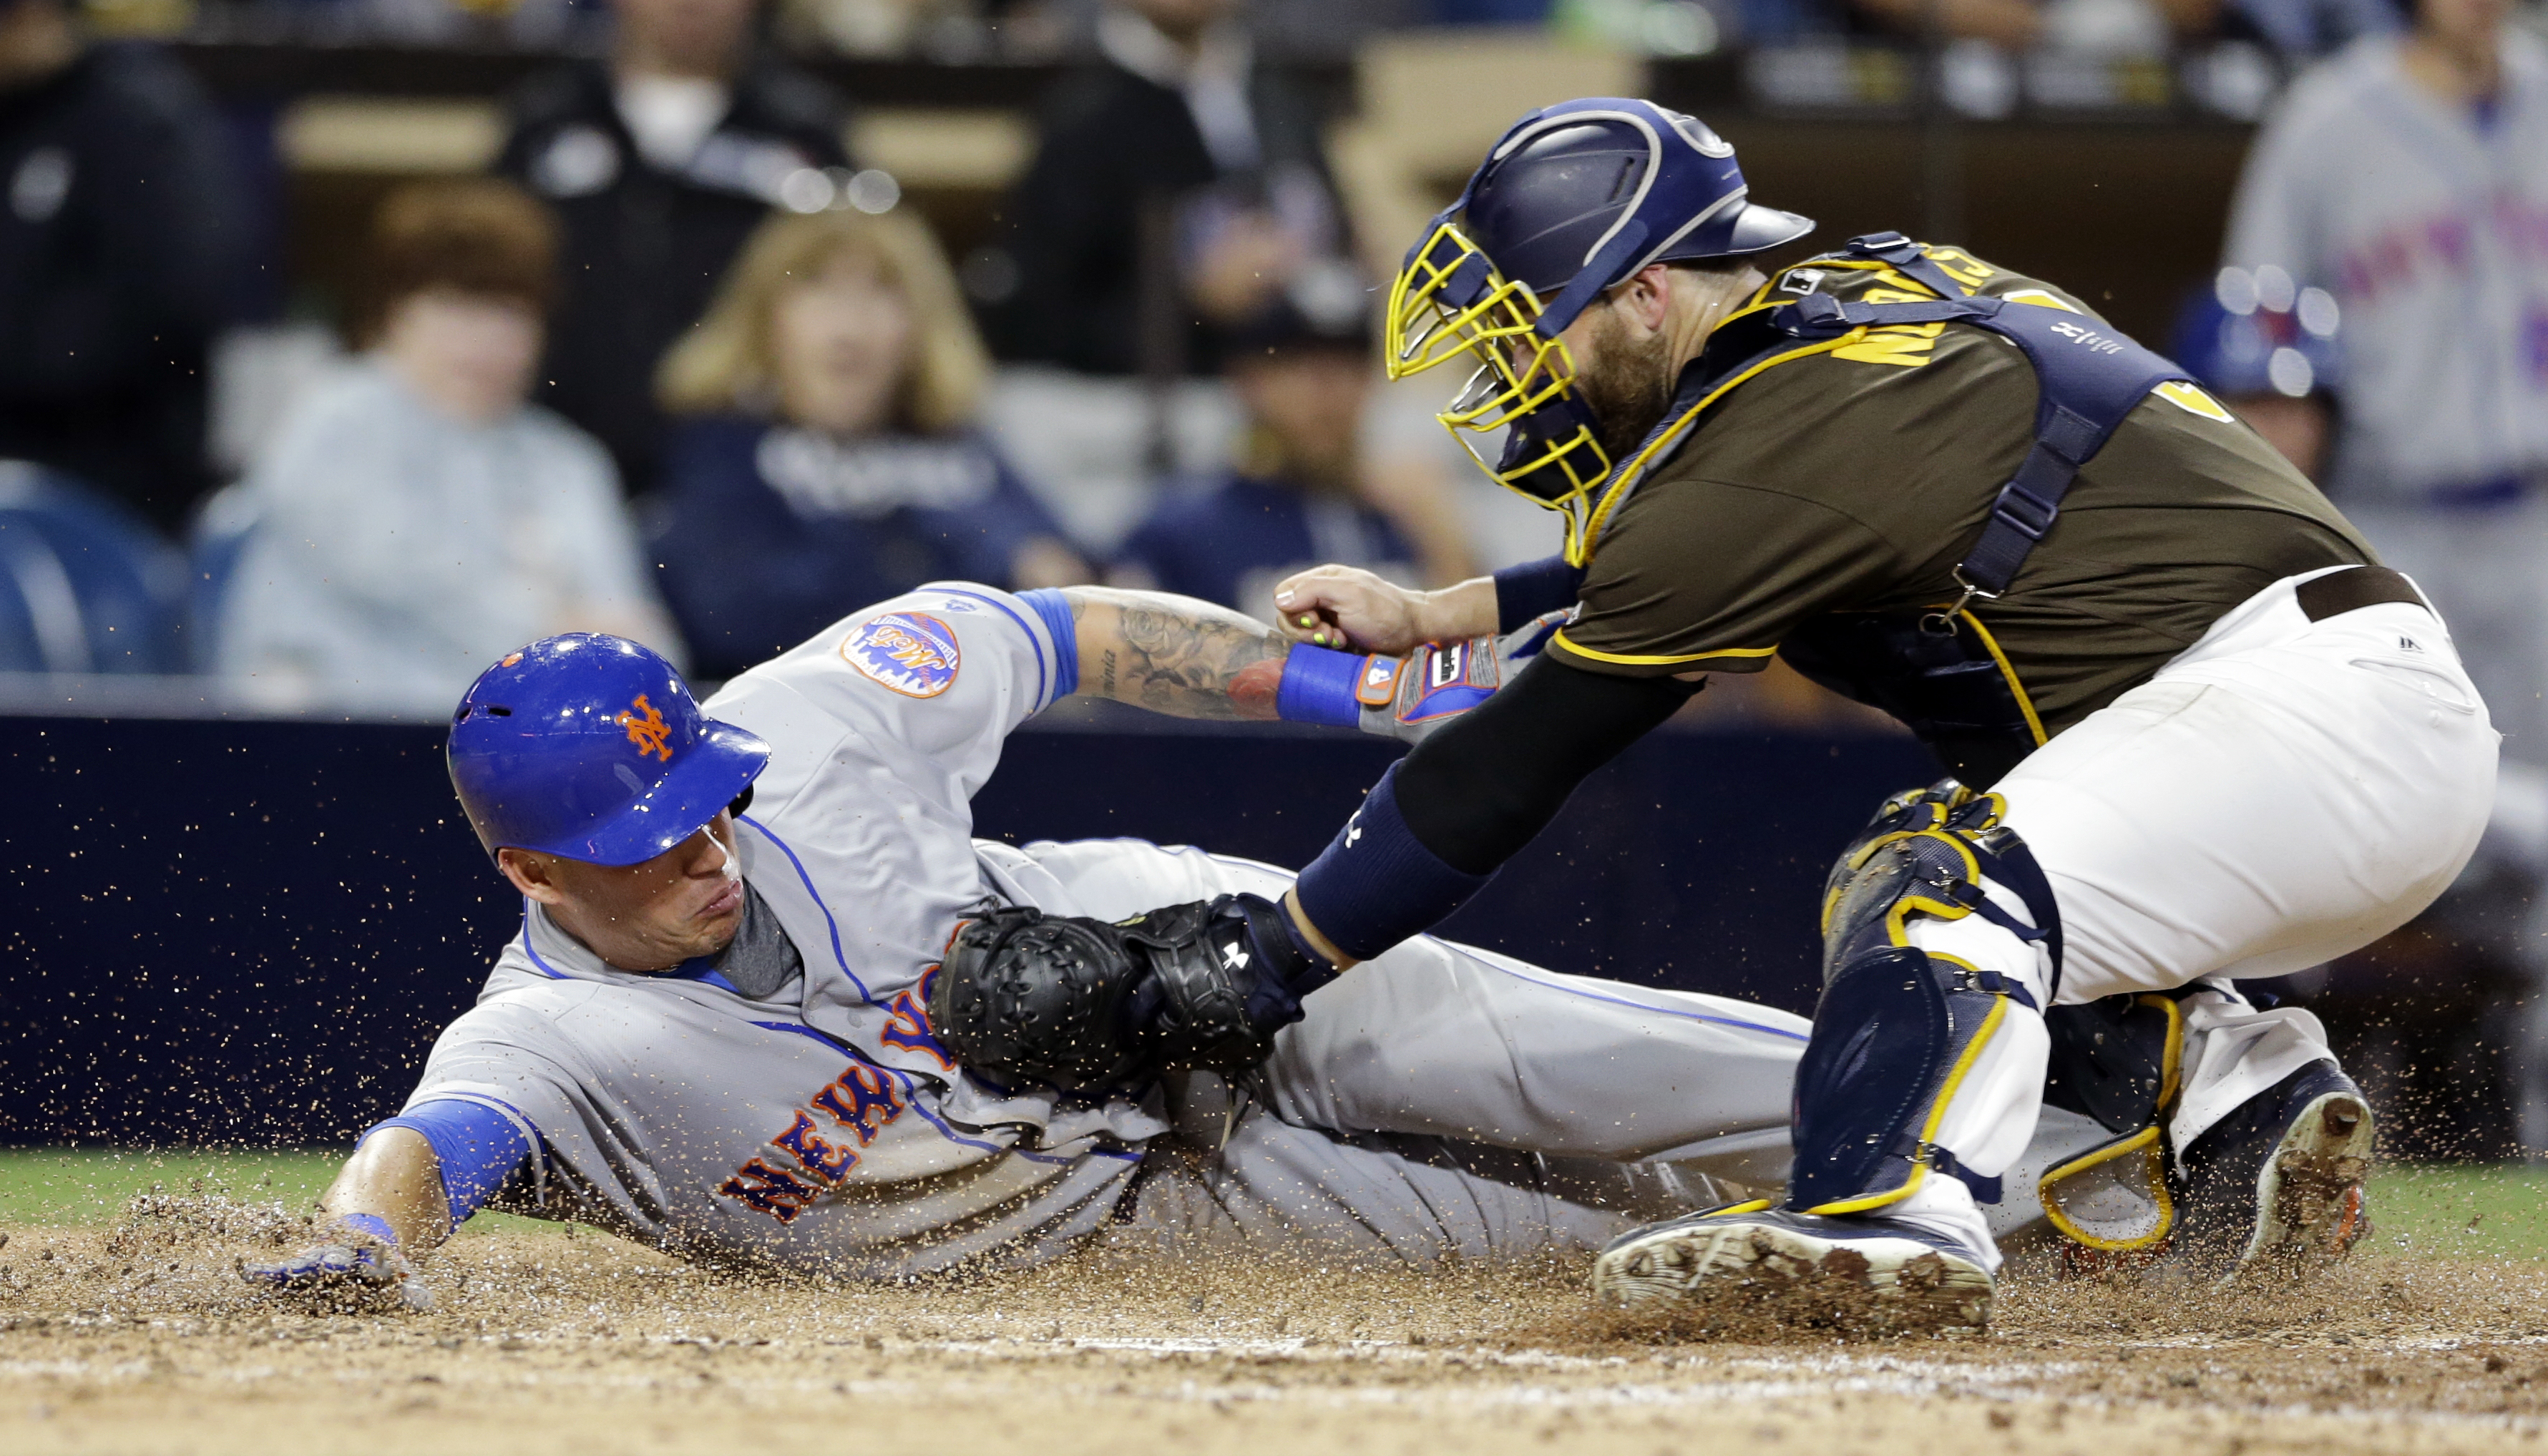 San Diego Padres catcher Derek Norris, right, tags out New York Mets' Asdrubal Cabrera during the seventh inning of a baseball game Friday, May 6, 2016, in San Diego. (AP Photo/Gregory Bull)